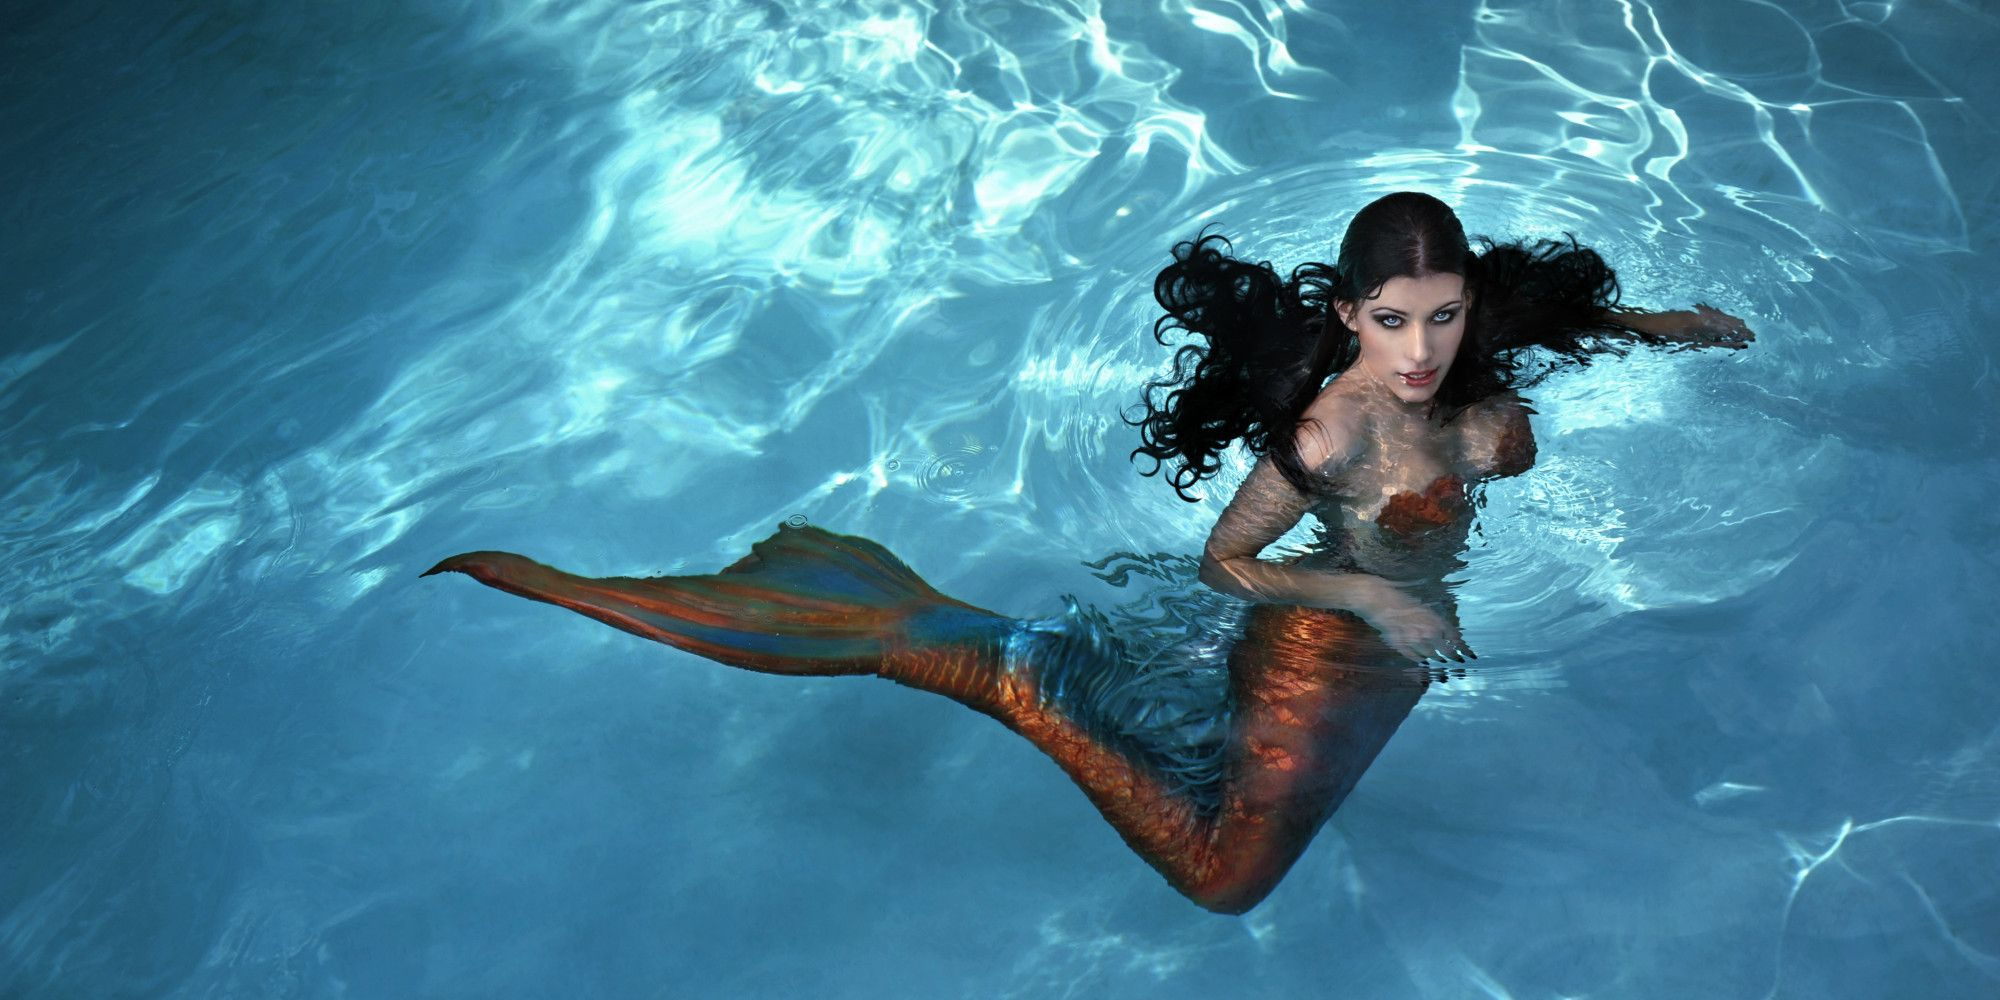 Real Mermaids Found Alive Discovery Channel